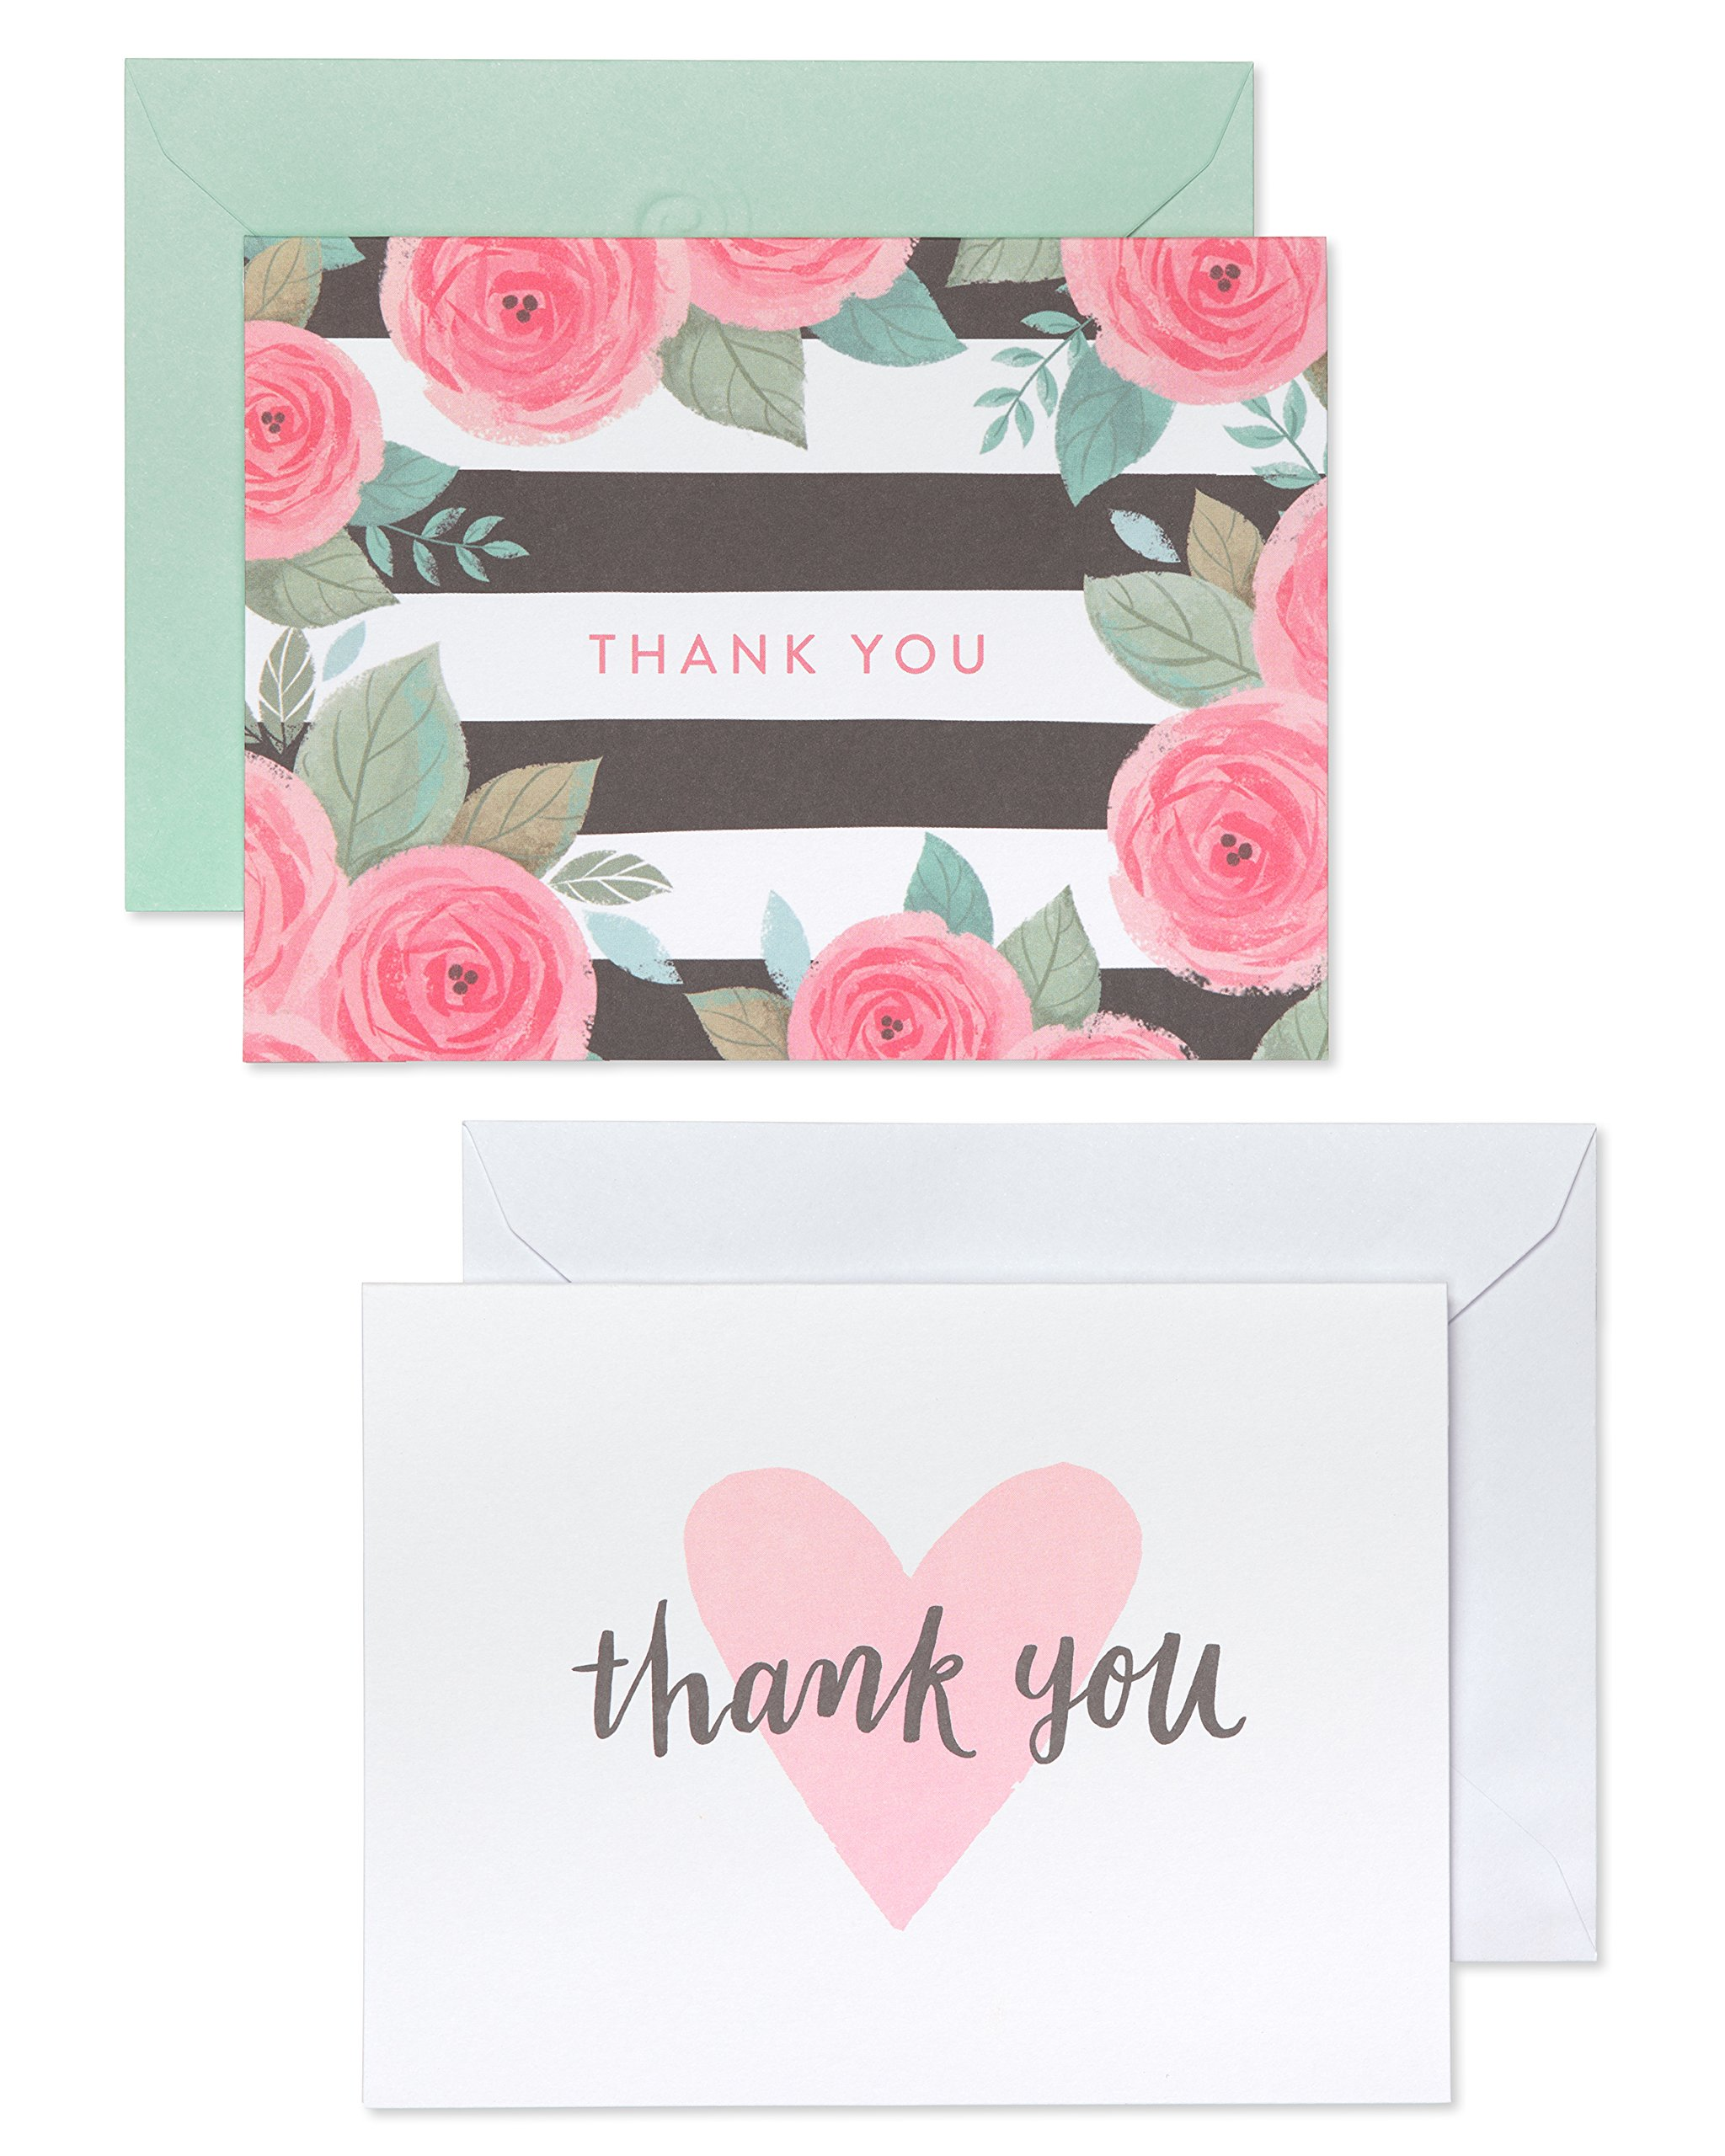 American Greetings Pink, Black and White Floral and Hearts Thank-You Cards and White Envelopes, 50-Count